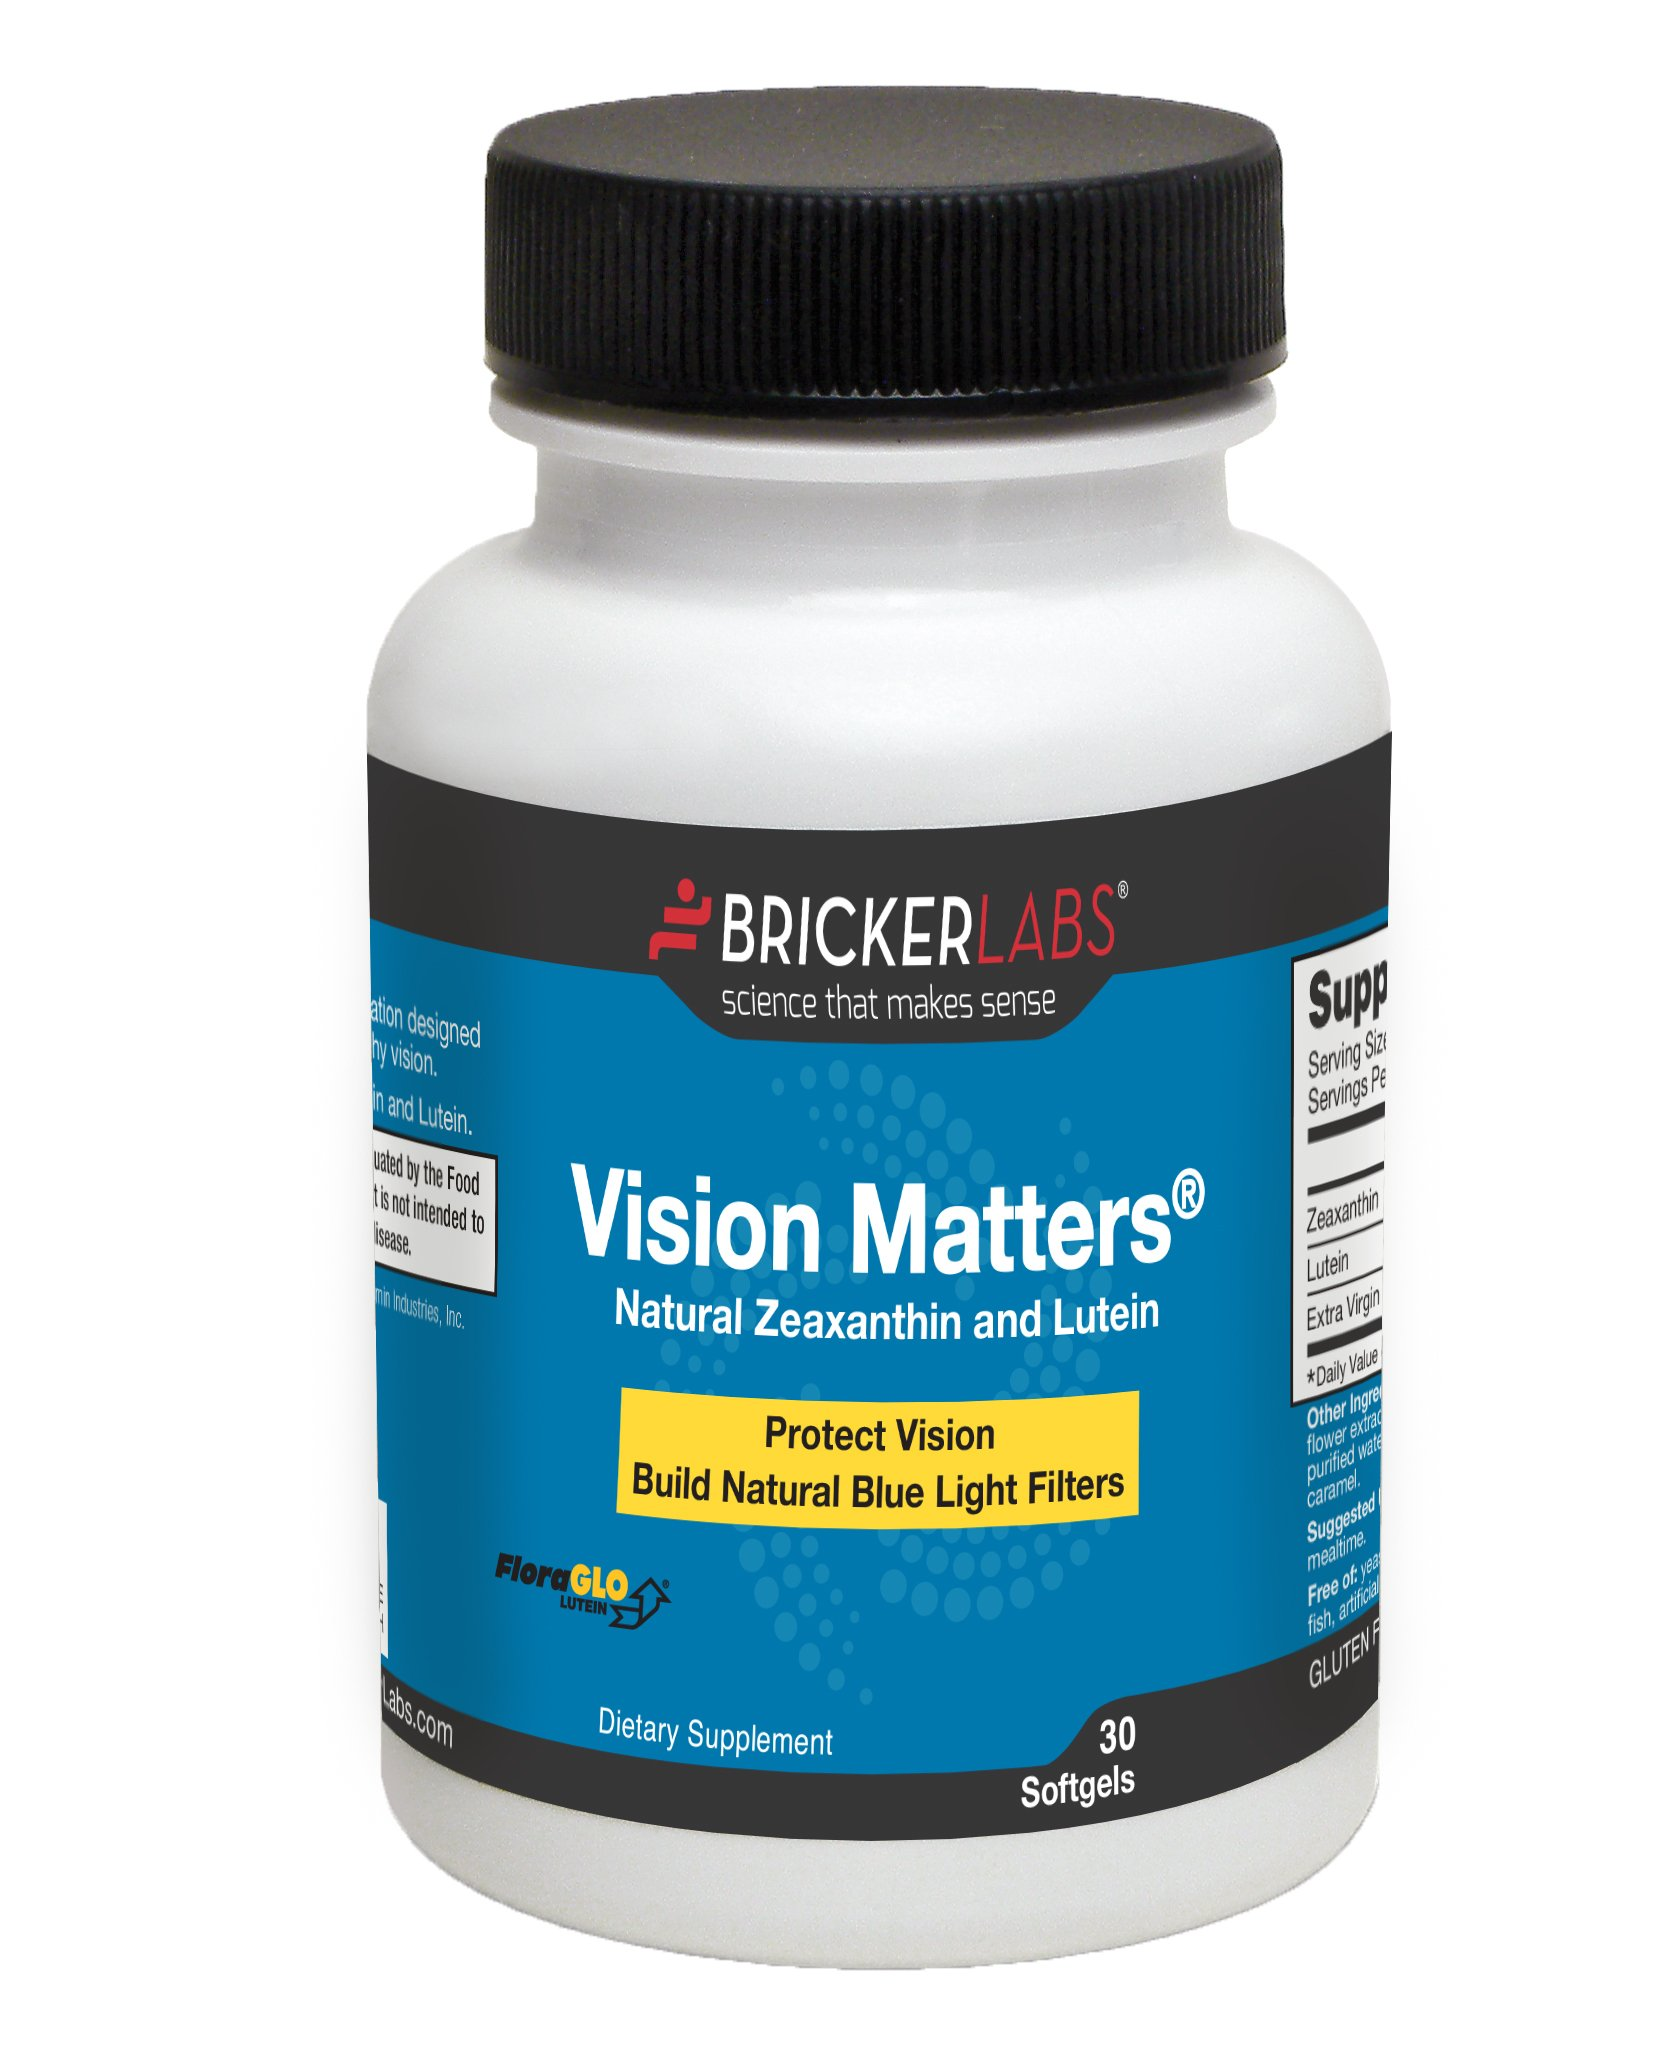 Vision Matters Natural Zeaxanthin and Lutein acting as Antioxidant - Vision Supplement - Protect Eye Health when Using Digital Devices